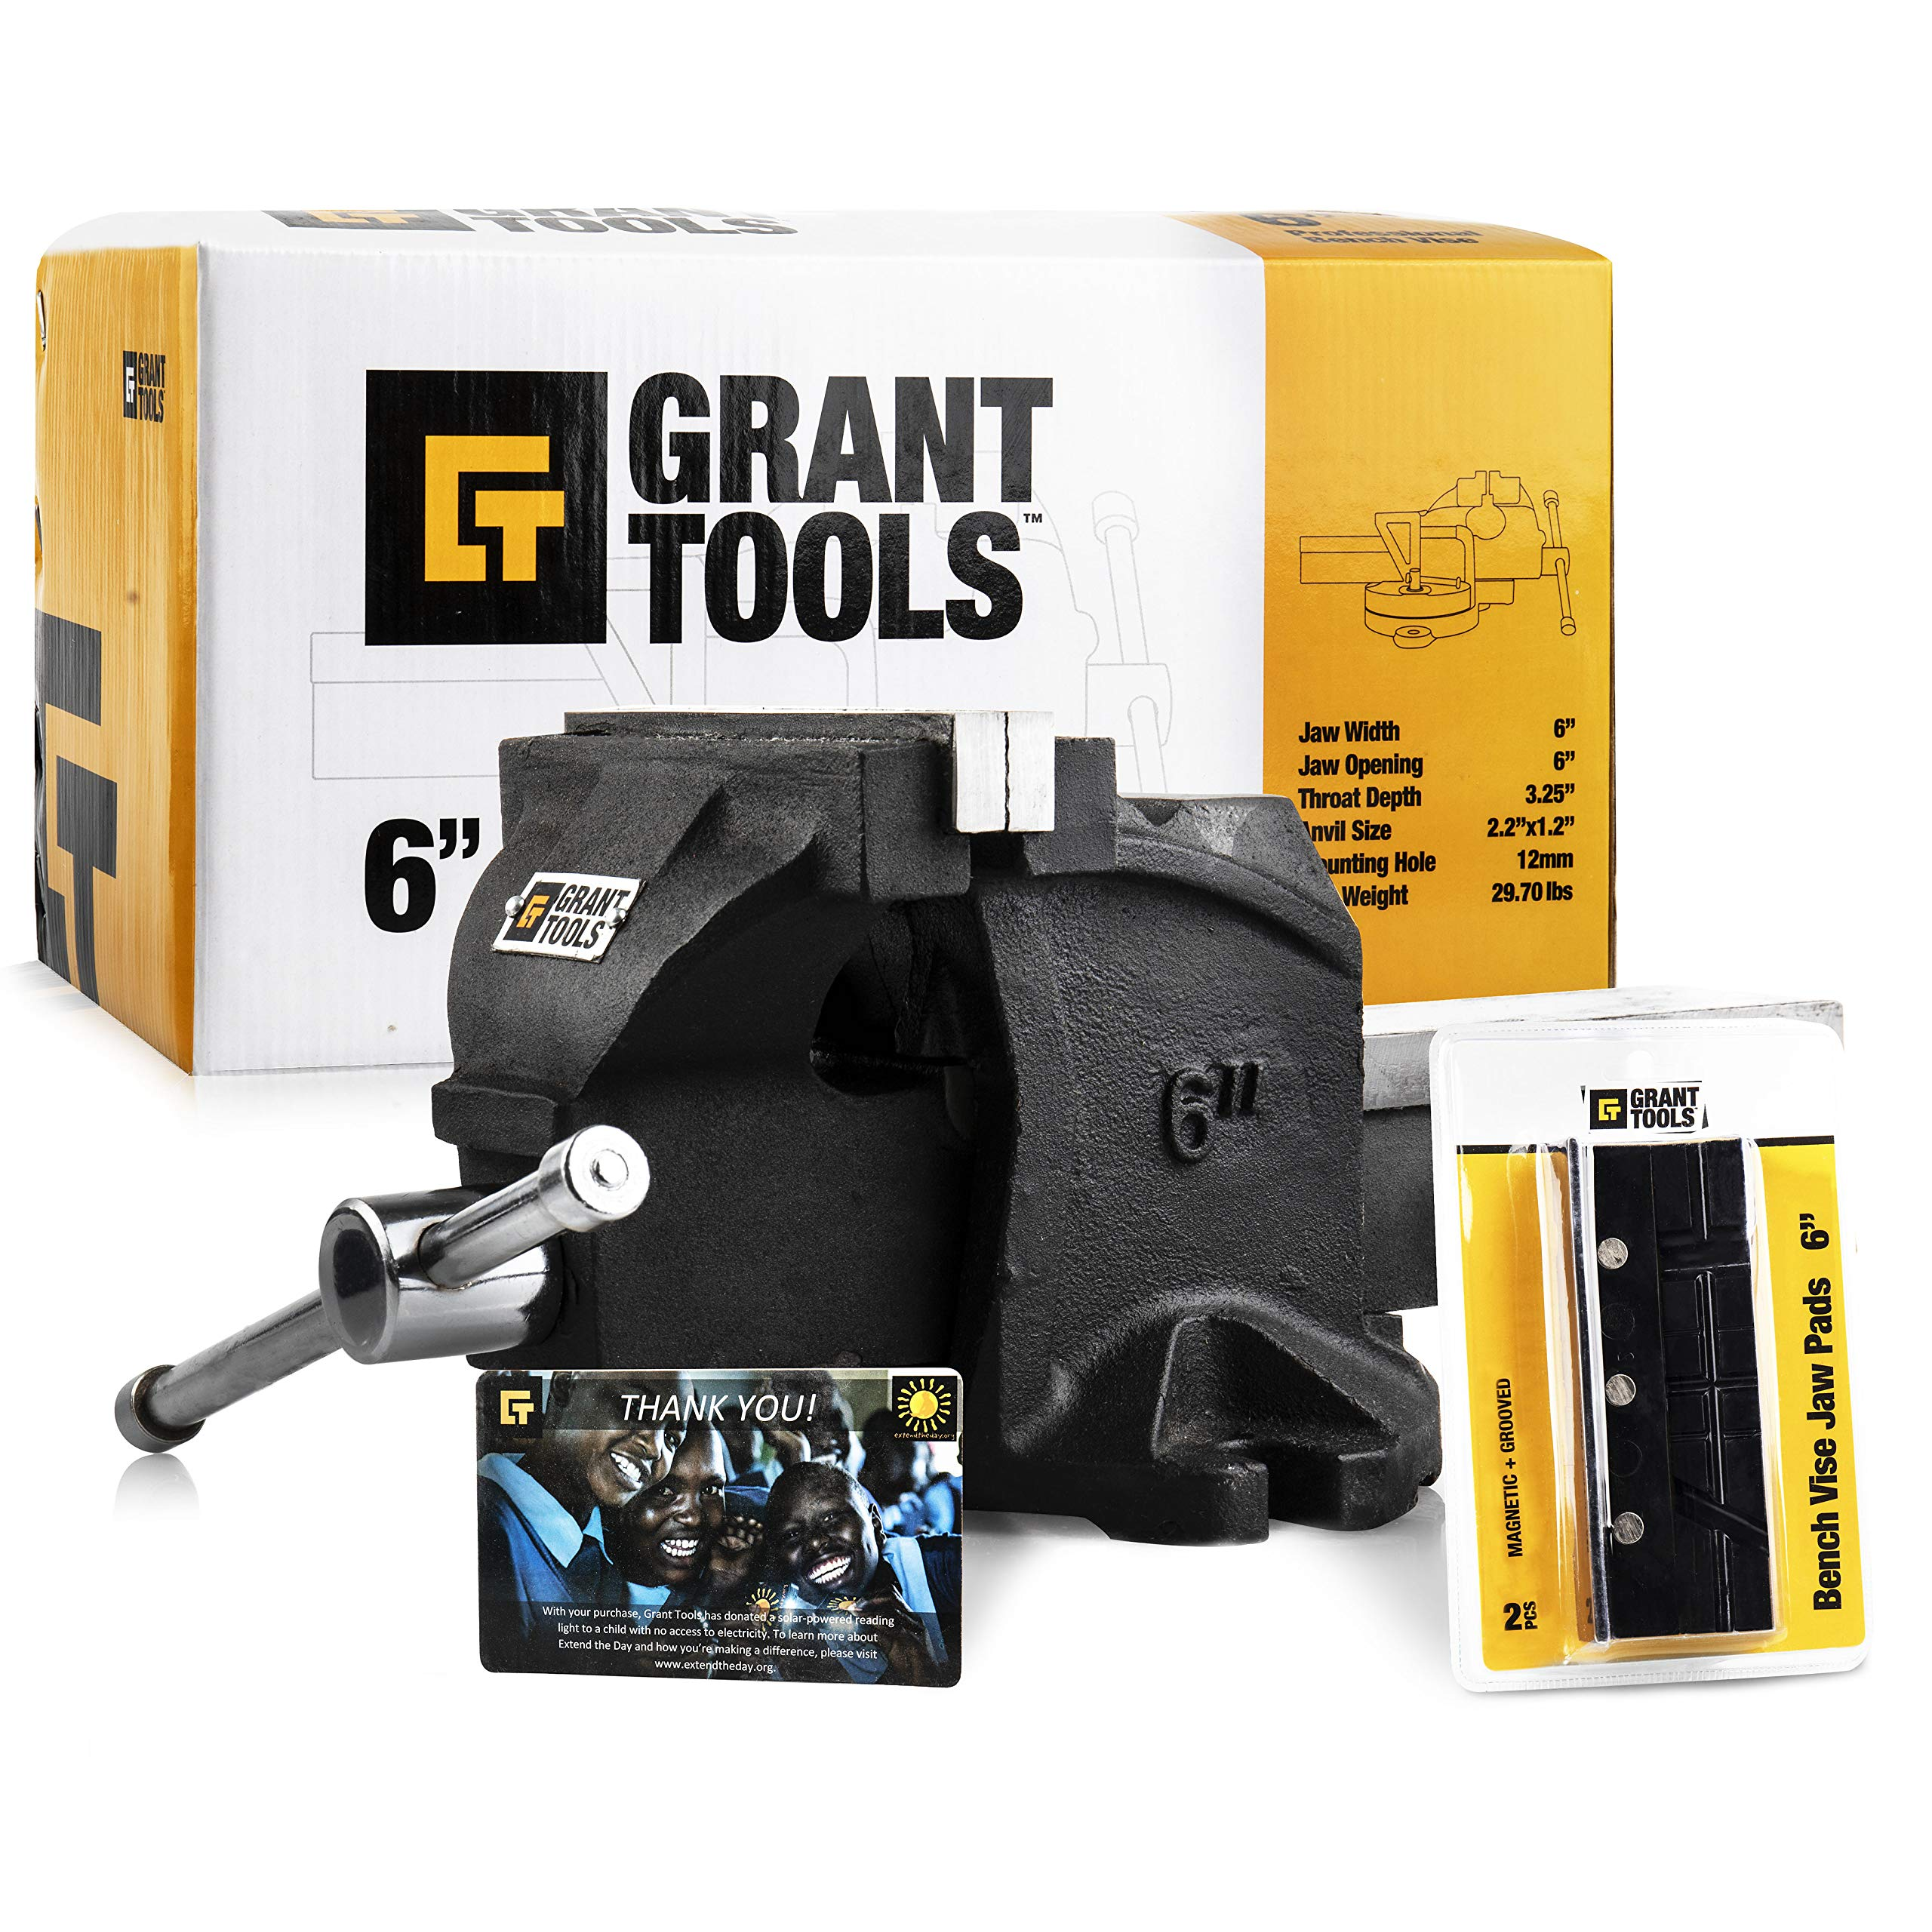 Grant Tools Professional Bench Vise (4'' and 6'' Available) | 2 Vise Jaws Included | With Each Vise Sold 1 Solar Light is Donated to a Child Abroad in Need via Extend The Day (6'')